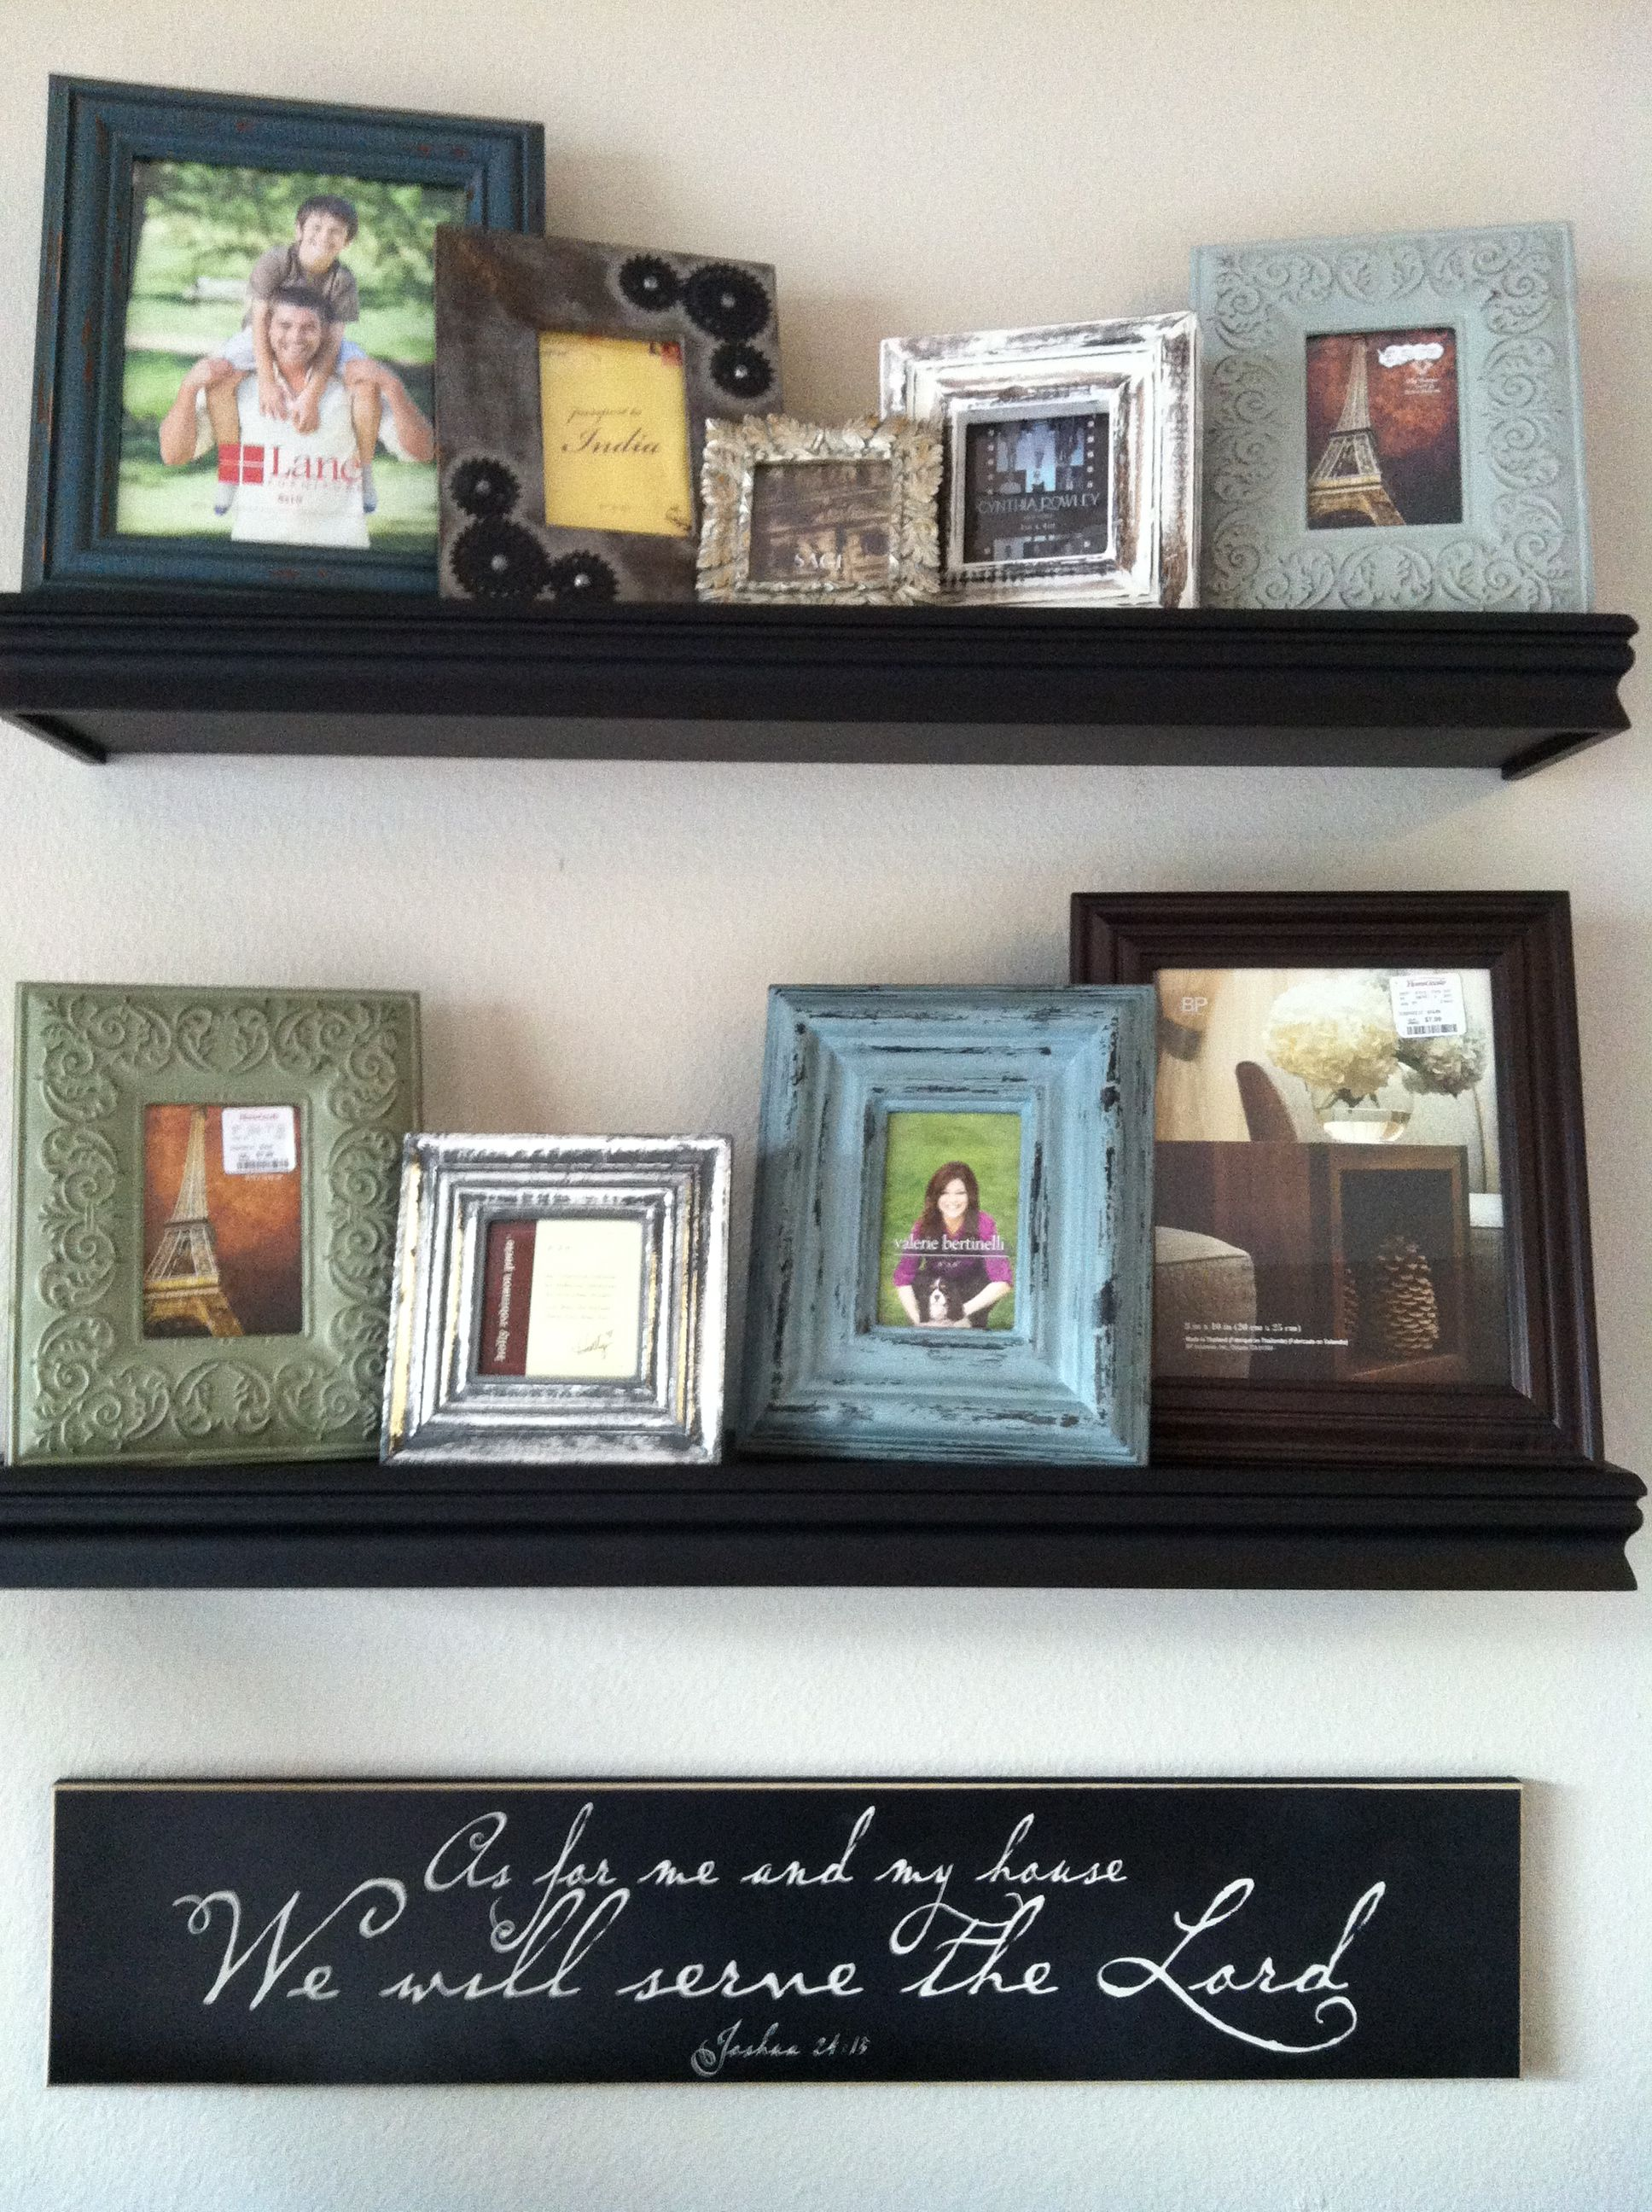 Color Frames Collage On Shelves Wall Sign Joshua